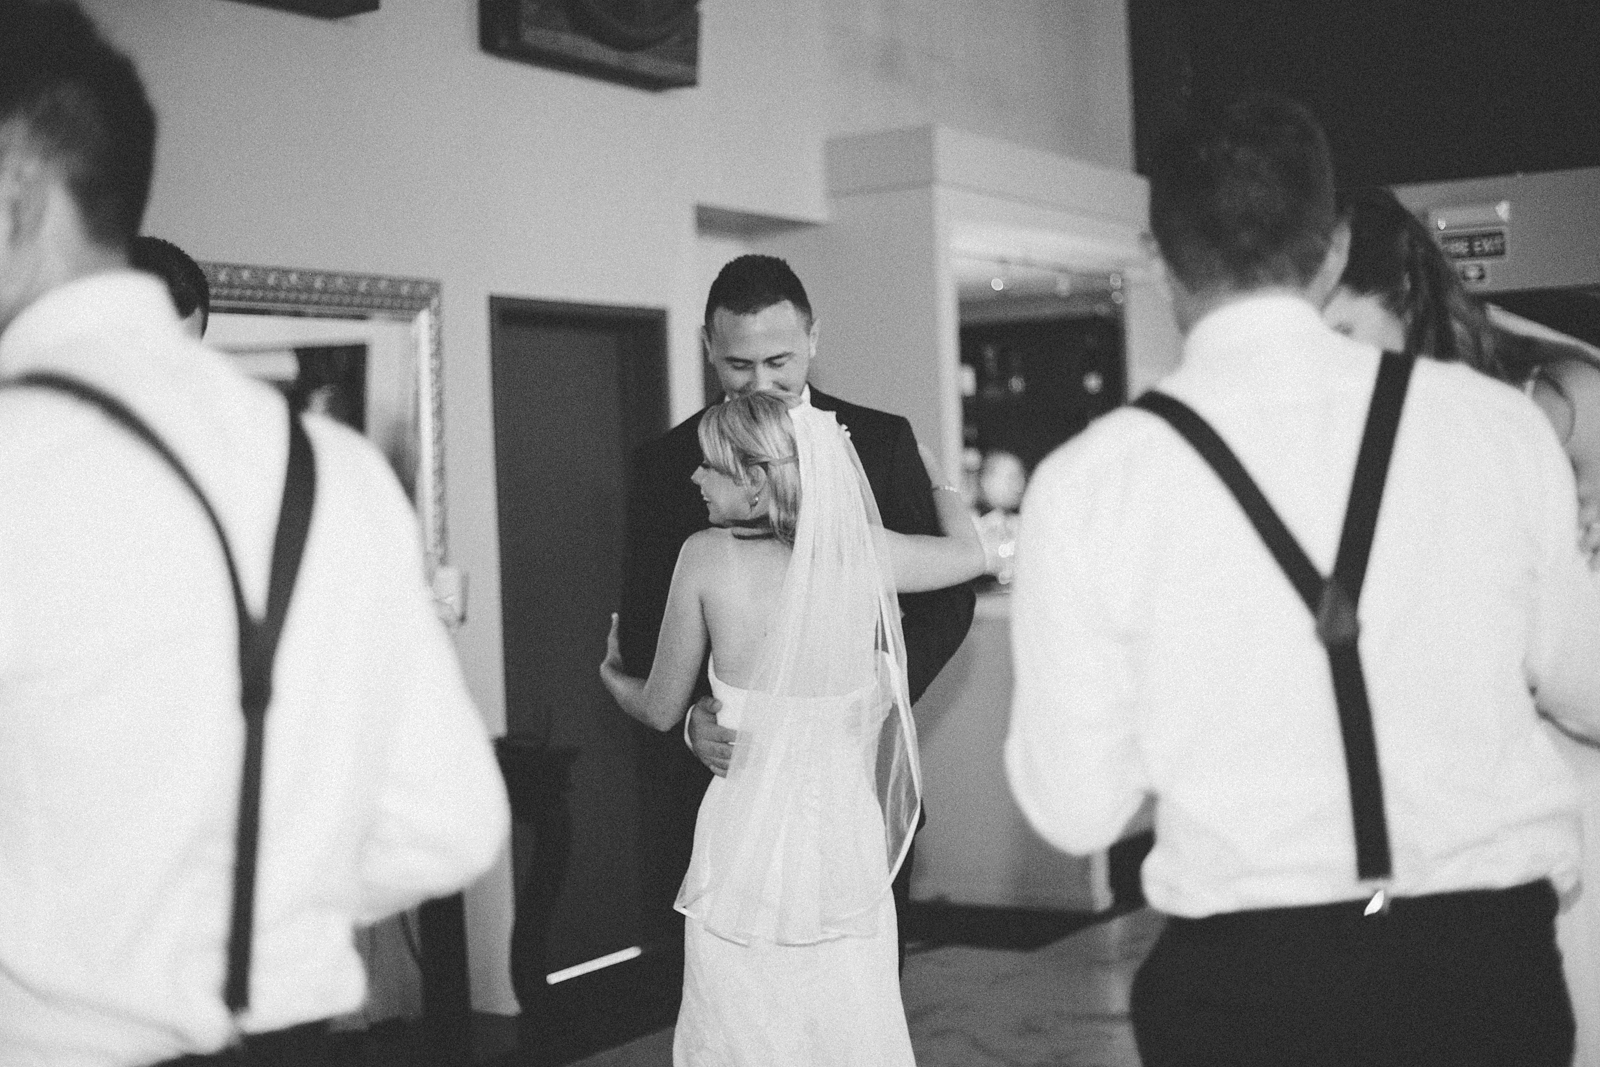 ConnorLaura_Auckland Wedding Photographer_Patty Lagera_0105.jpg